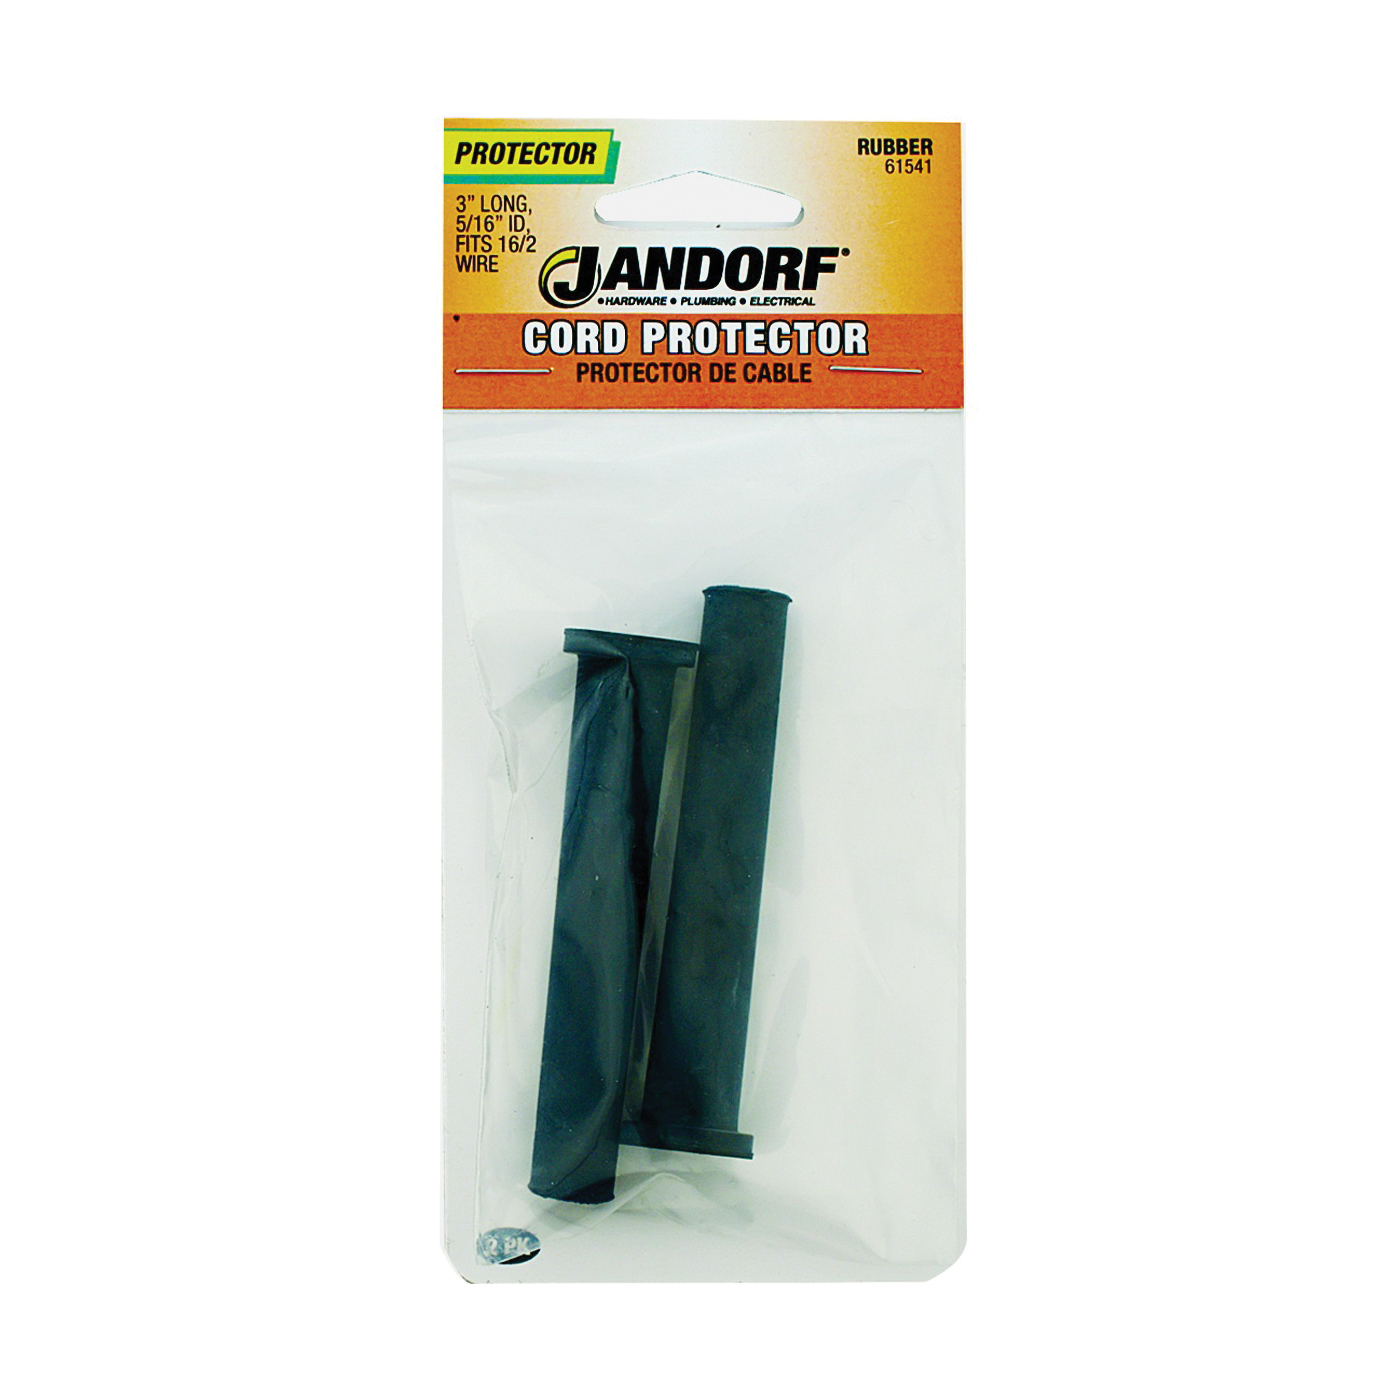 Picture of Jandorf 61541 Cord Protector, 5/16 in ID Dia, 3 in L, Rubber, Black